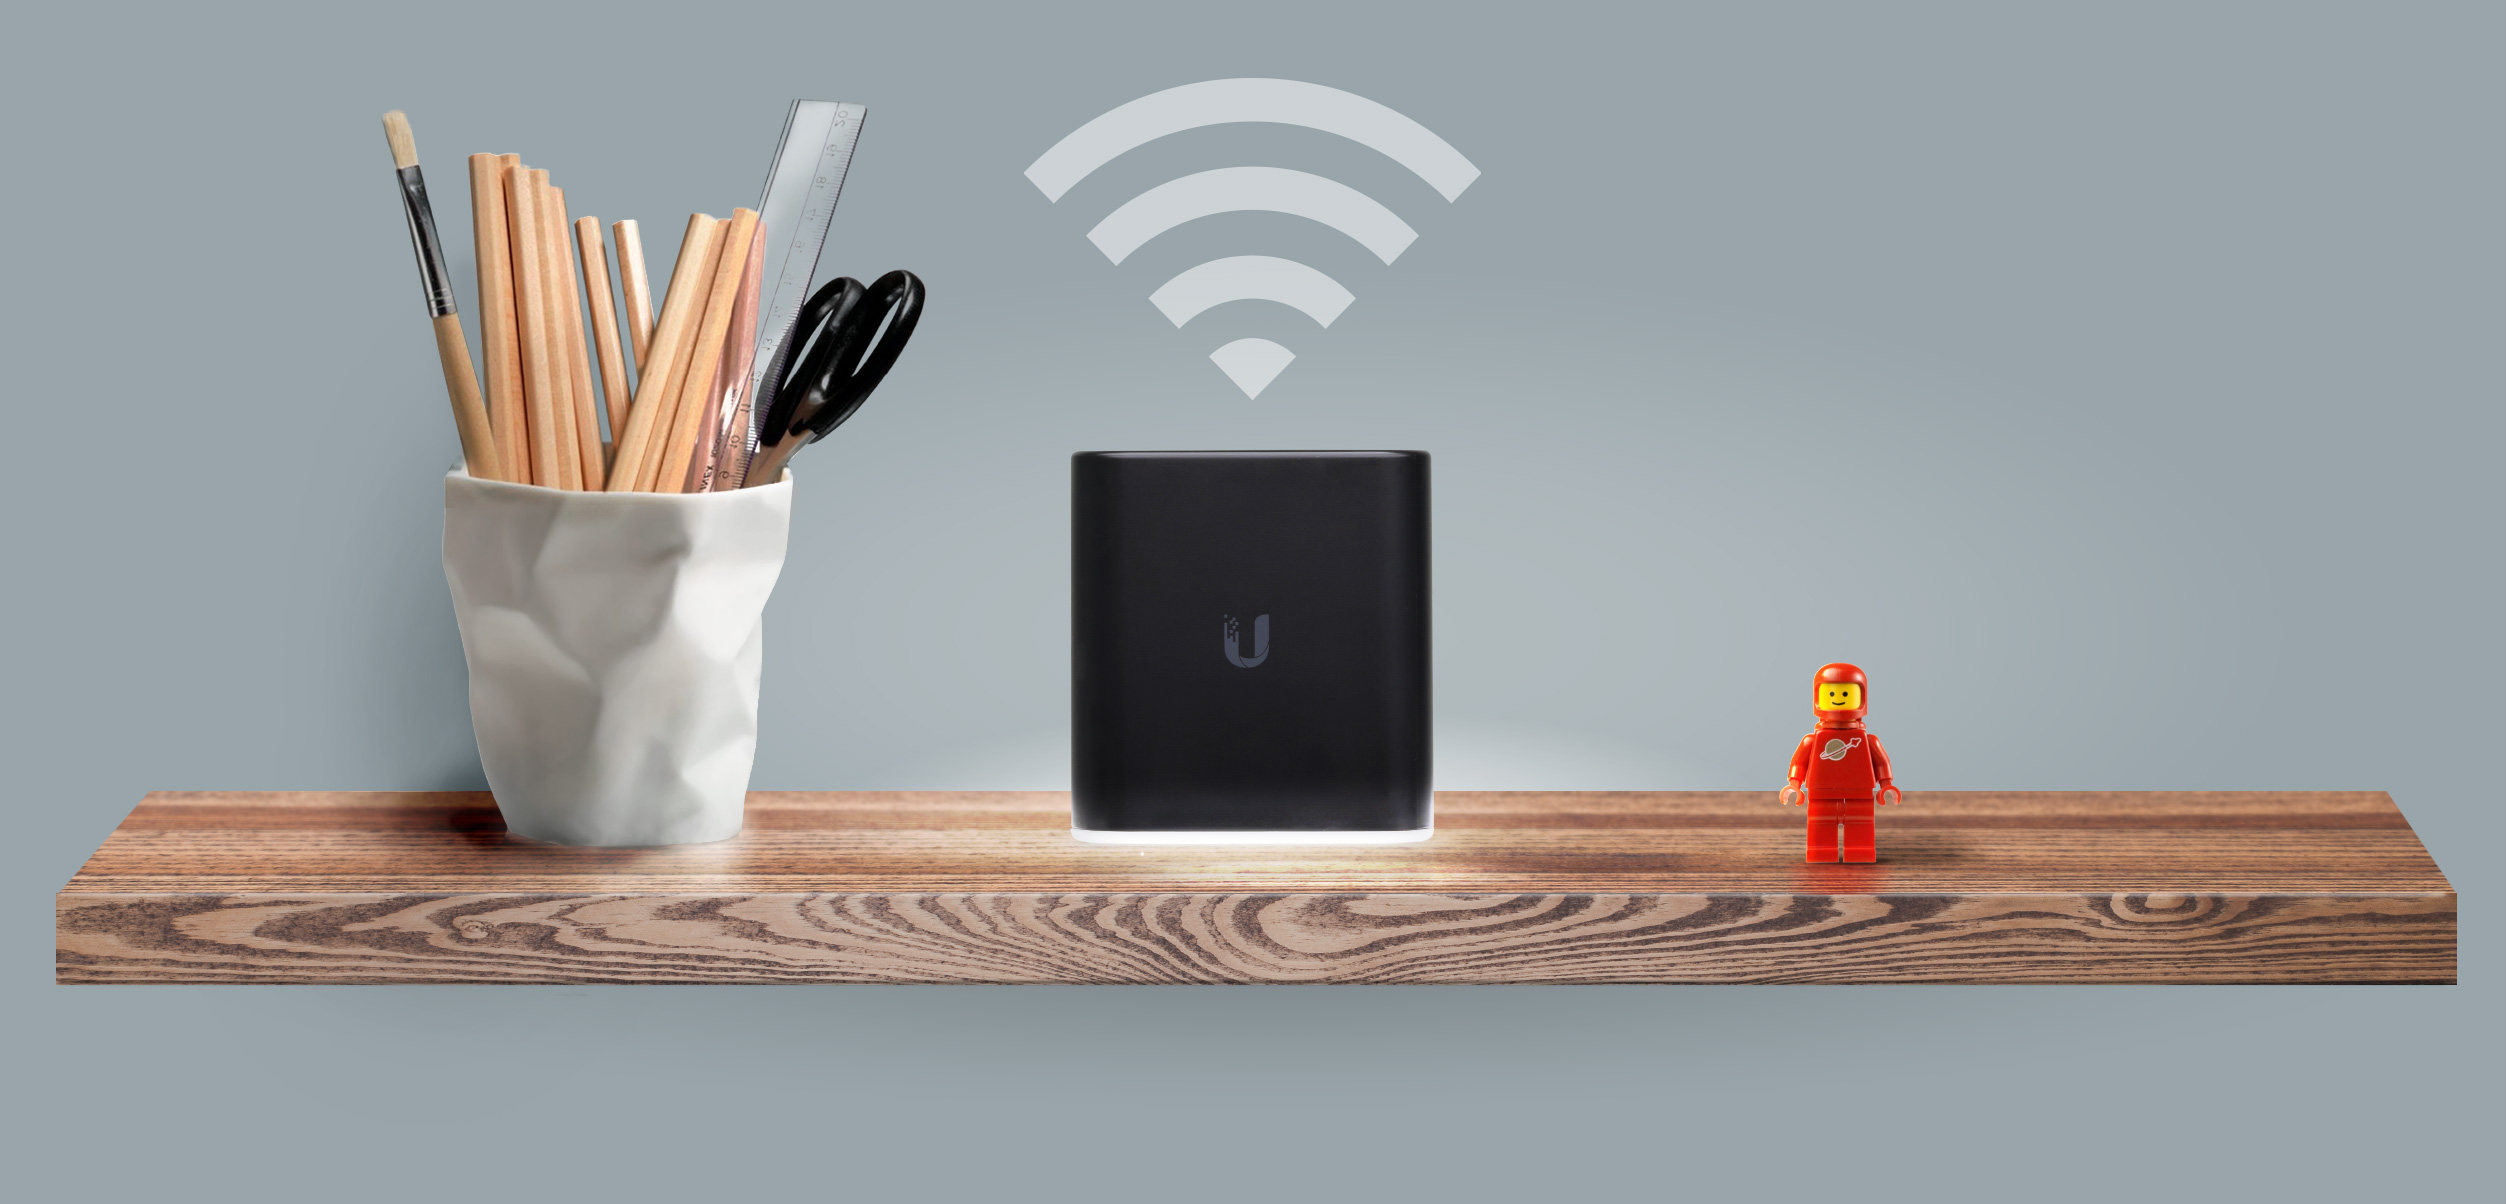 data-interchange=[https://prd-www-cdn.ubnt.com/media/images/product-features/aircube-feature-sleek-design01.jpg,